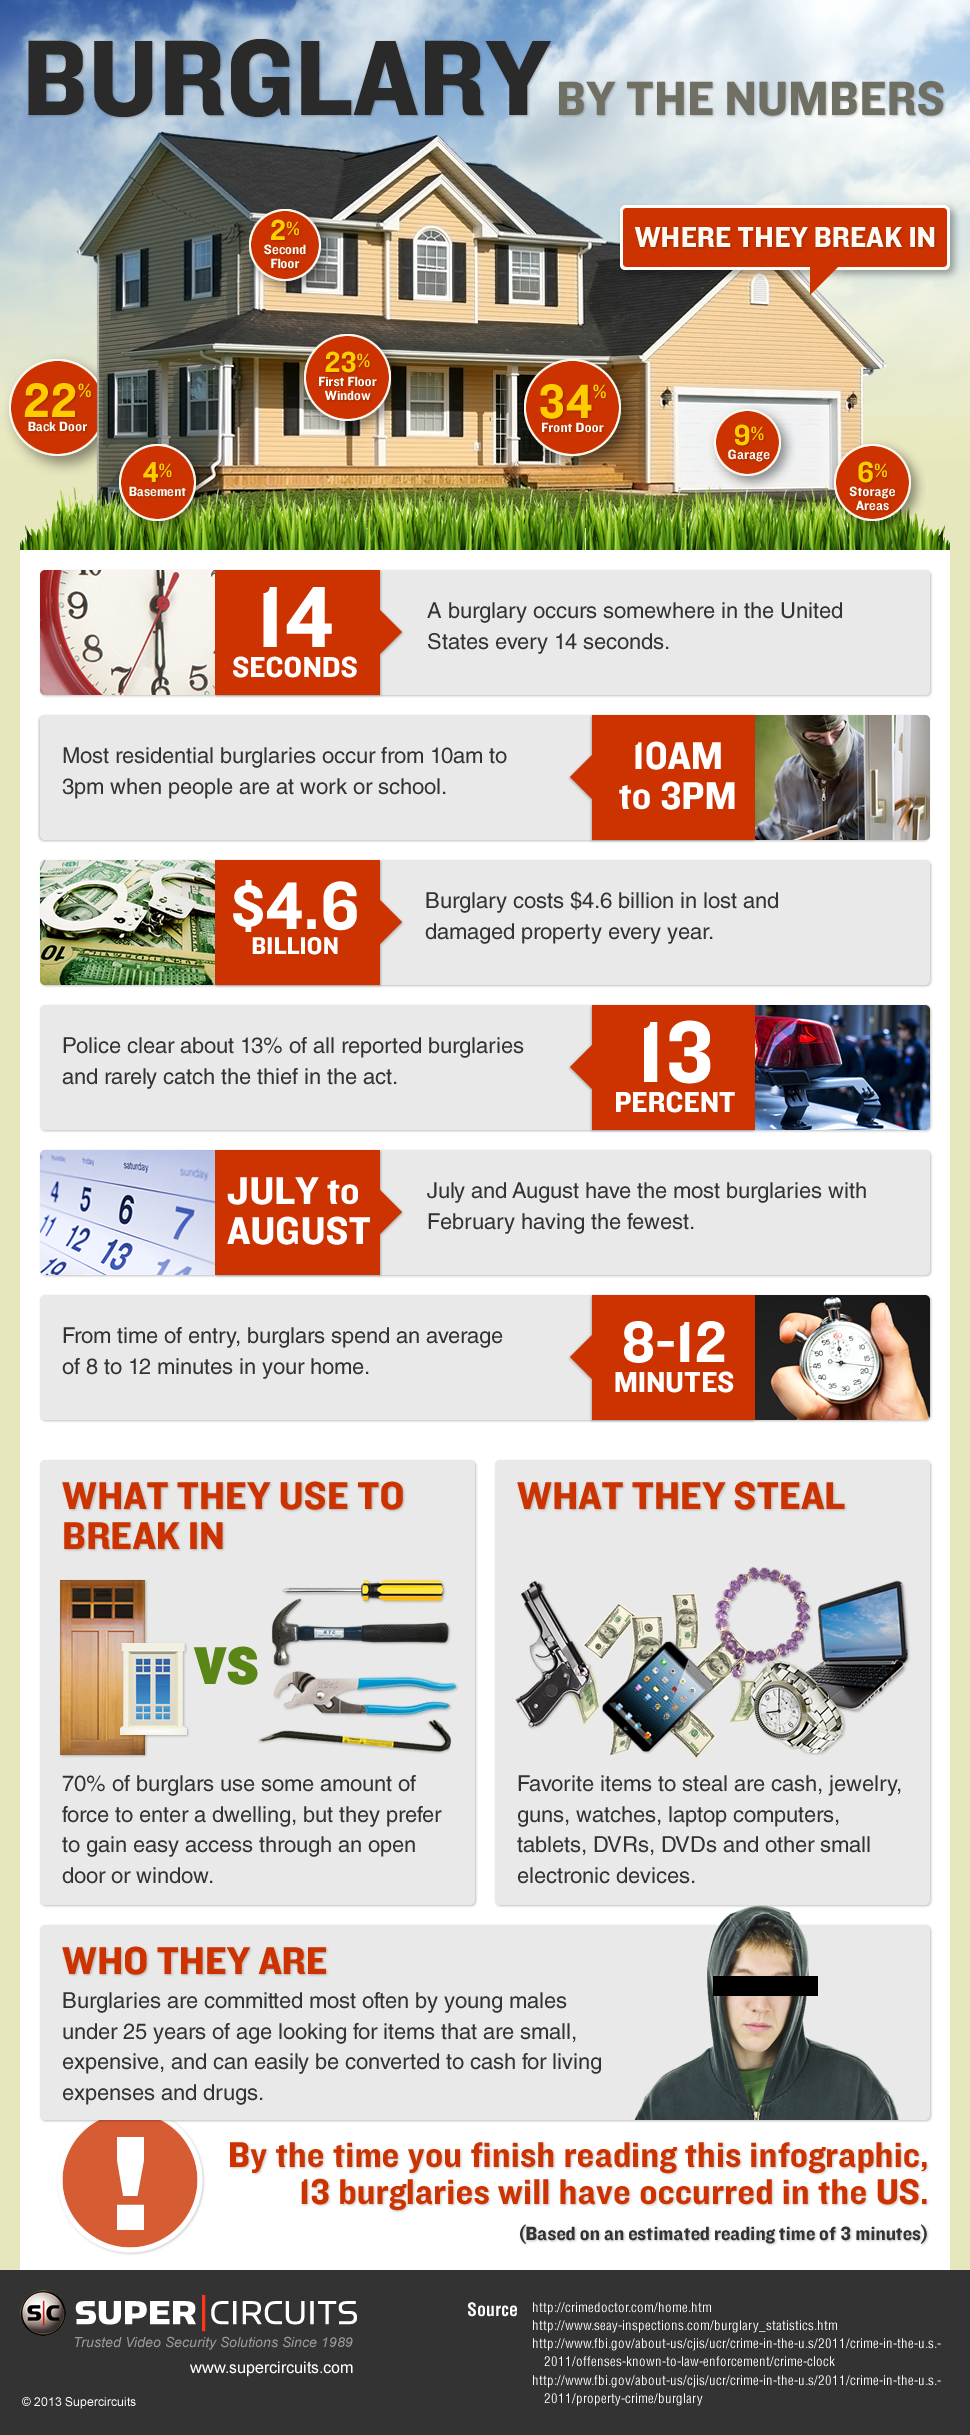 Video Security And Cctv Surveillance Blog Burglary By